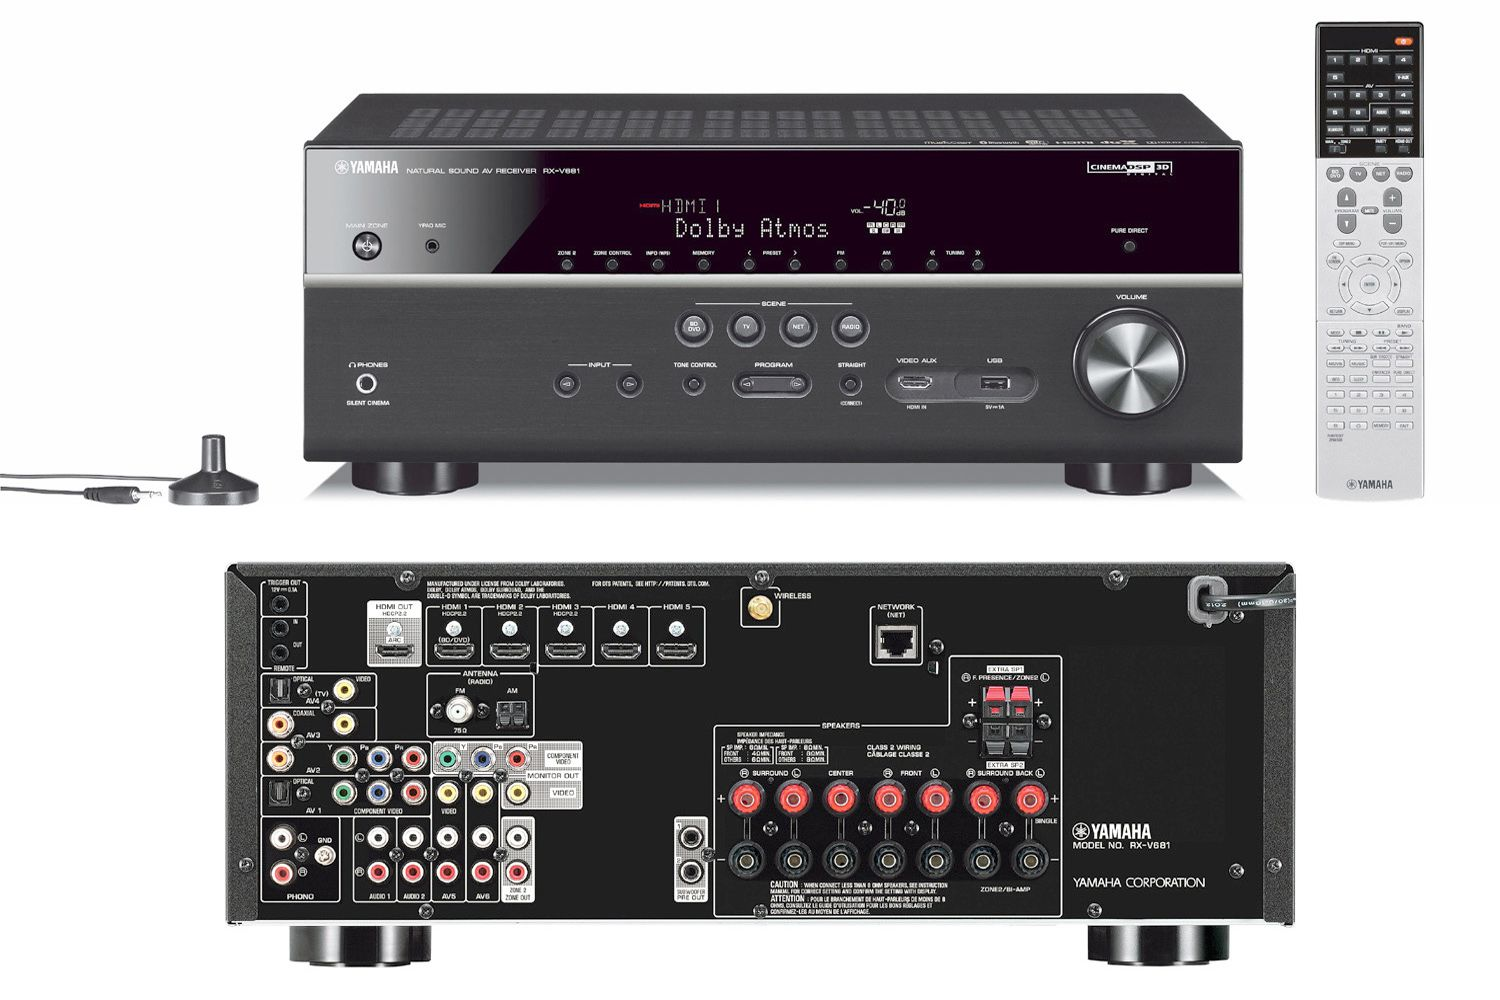 How To Set Up A Home Theater Receiver